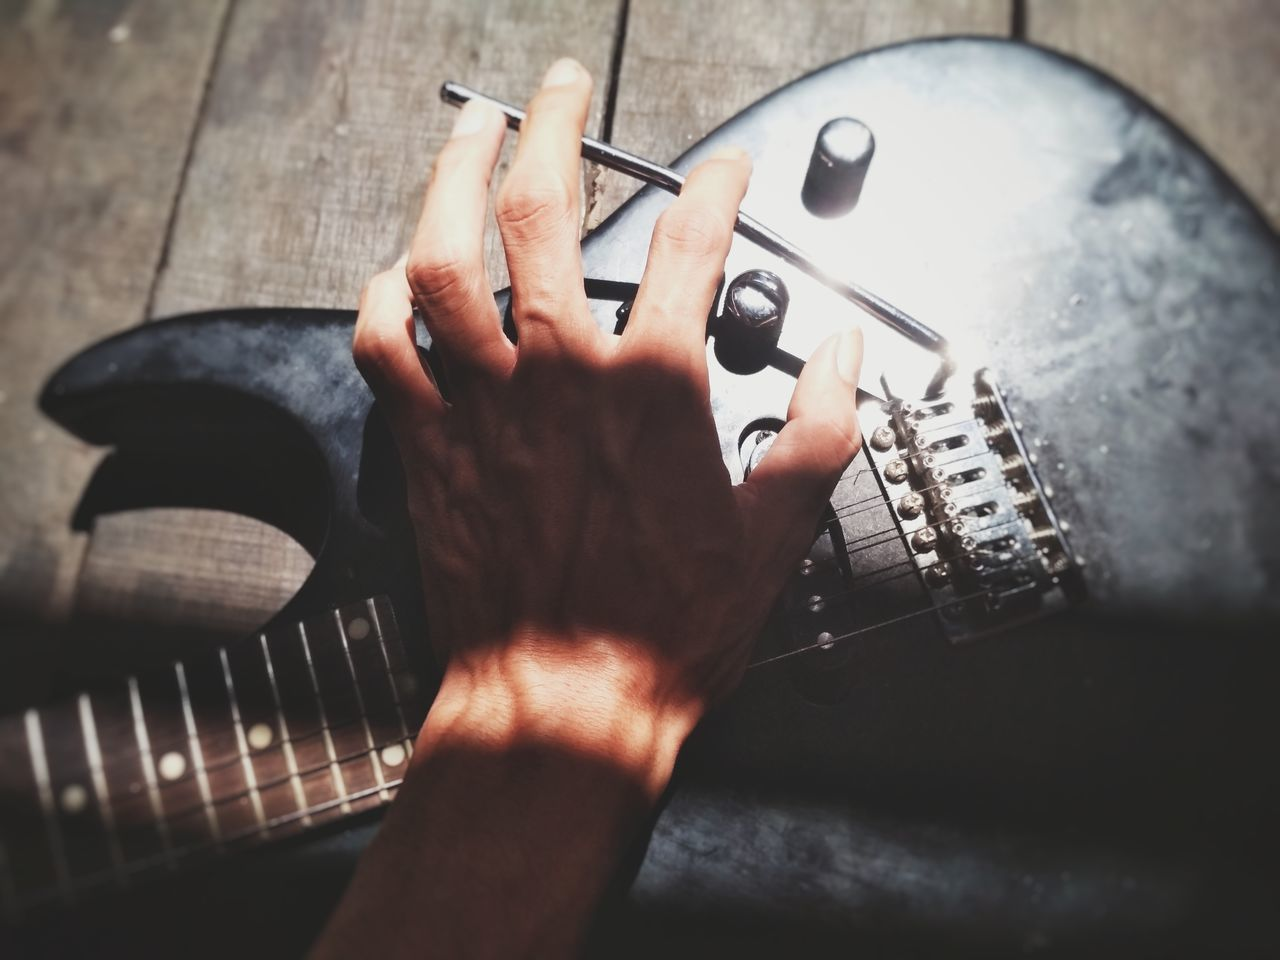 harmony and photography And EyeEm Selects Musical Instrument Human Body Part Music Human Hand Musician Playing One Person People Plucking An Instrument Close-up EyeEmNewHere Skill  Arts Culture And Entertainment Sommergefühle Guitar Strings Leisure Activity Musical Photos Music